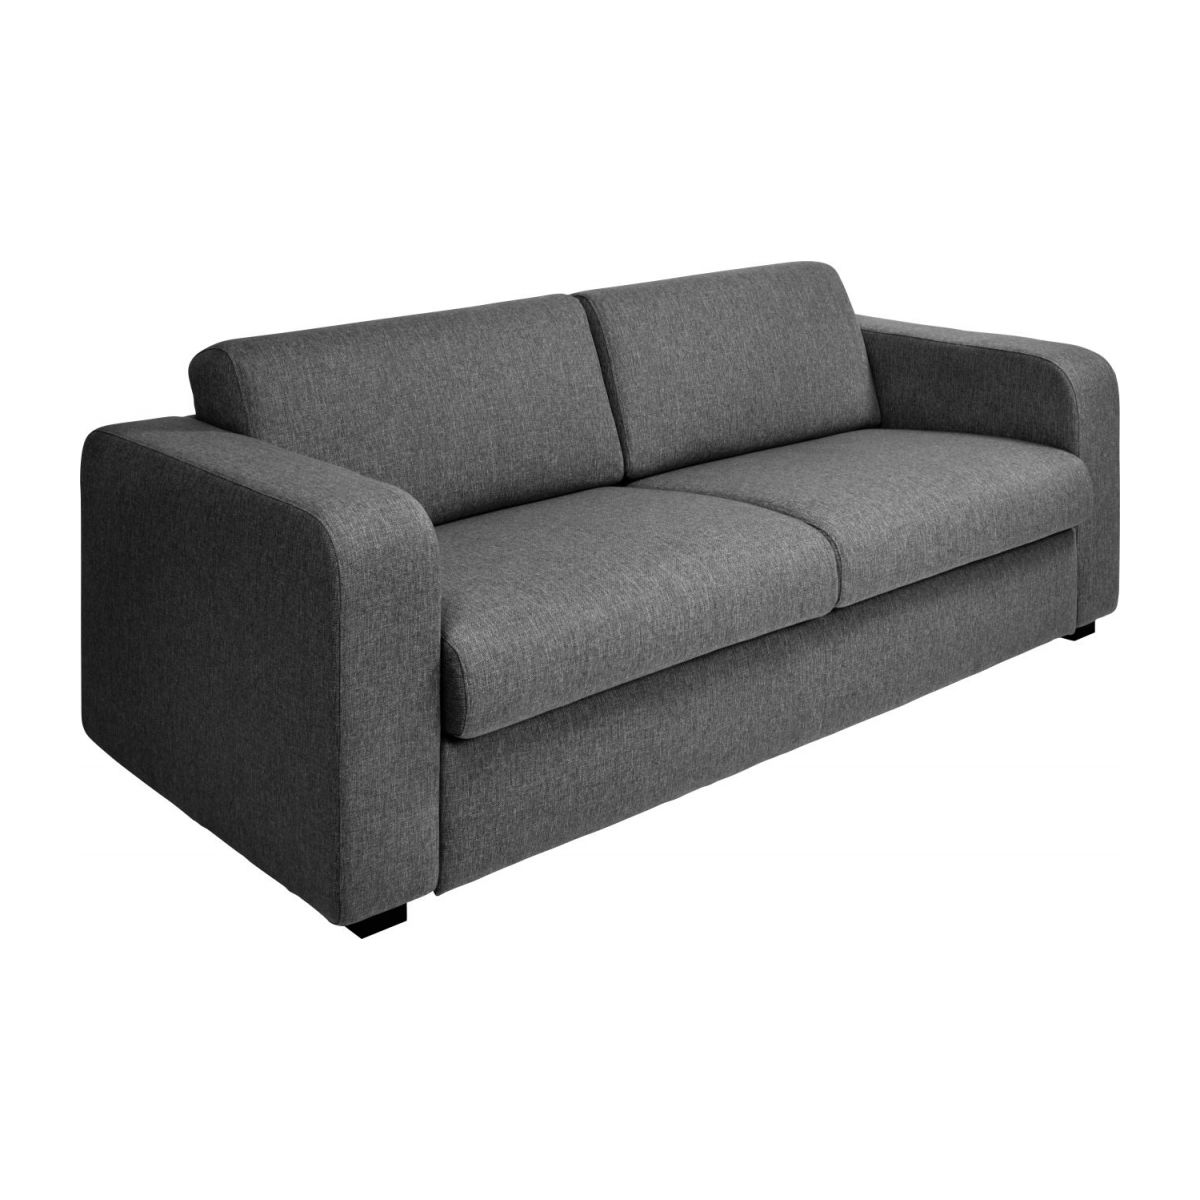 3-seater fabric sofa n°1